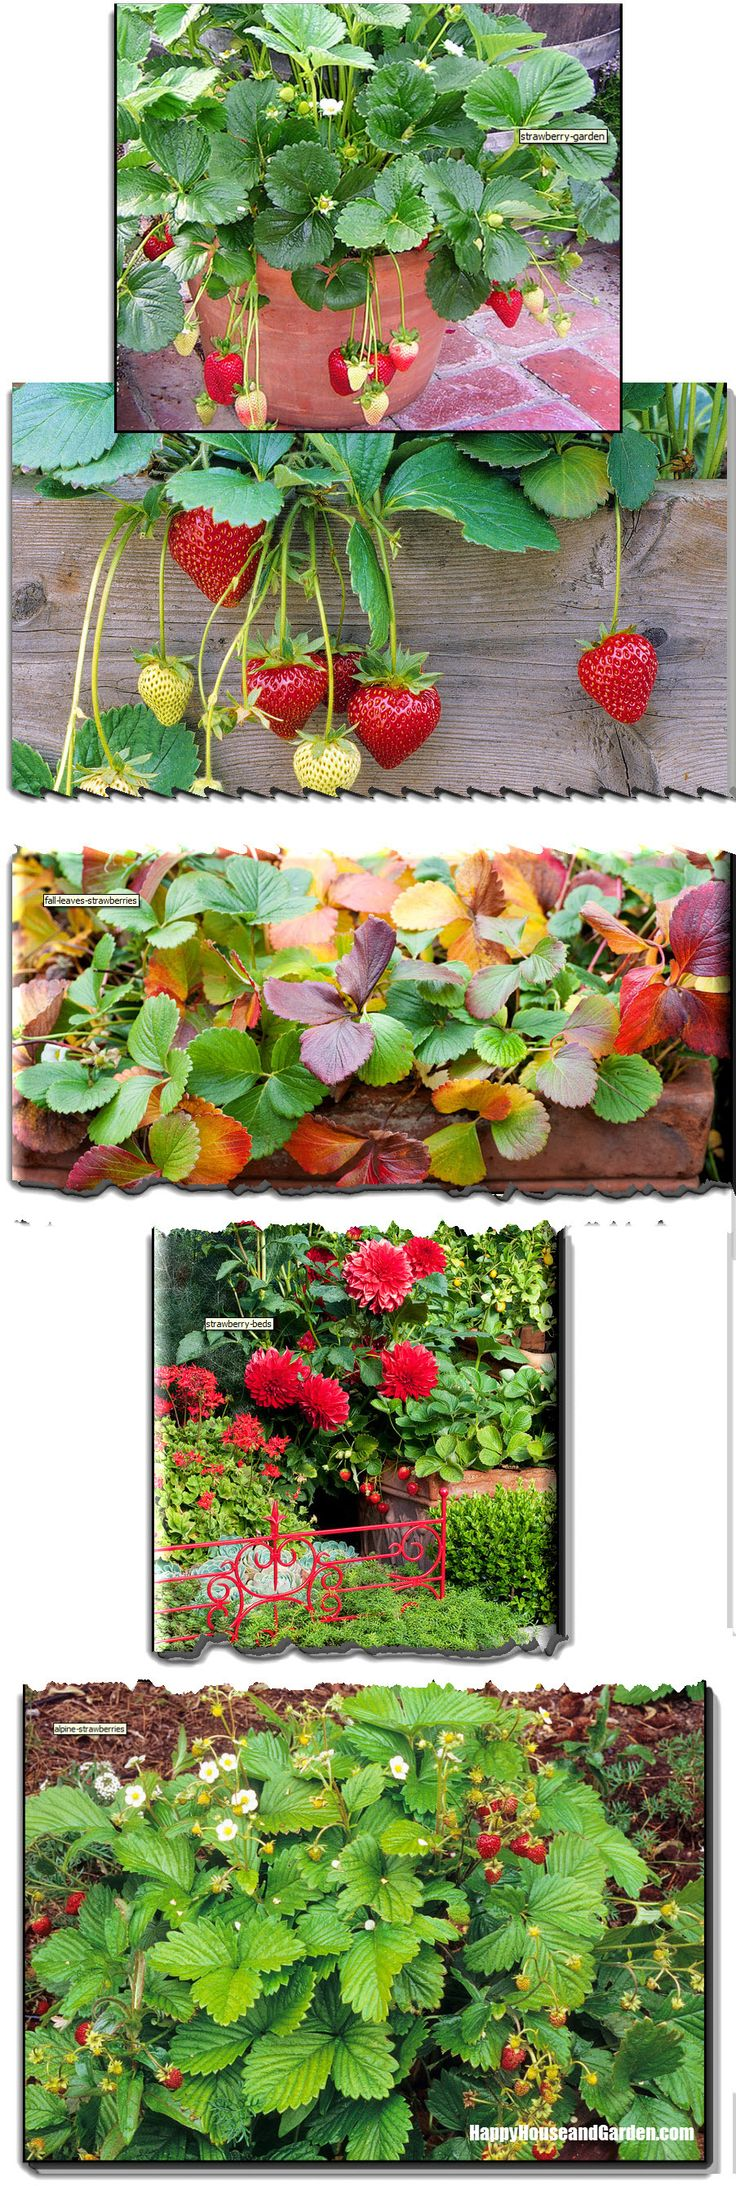 Growing Strawberries In Container Ideas From Edible